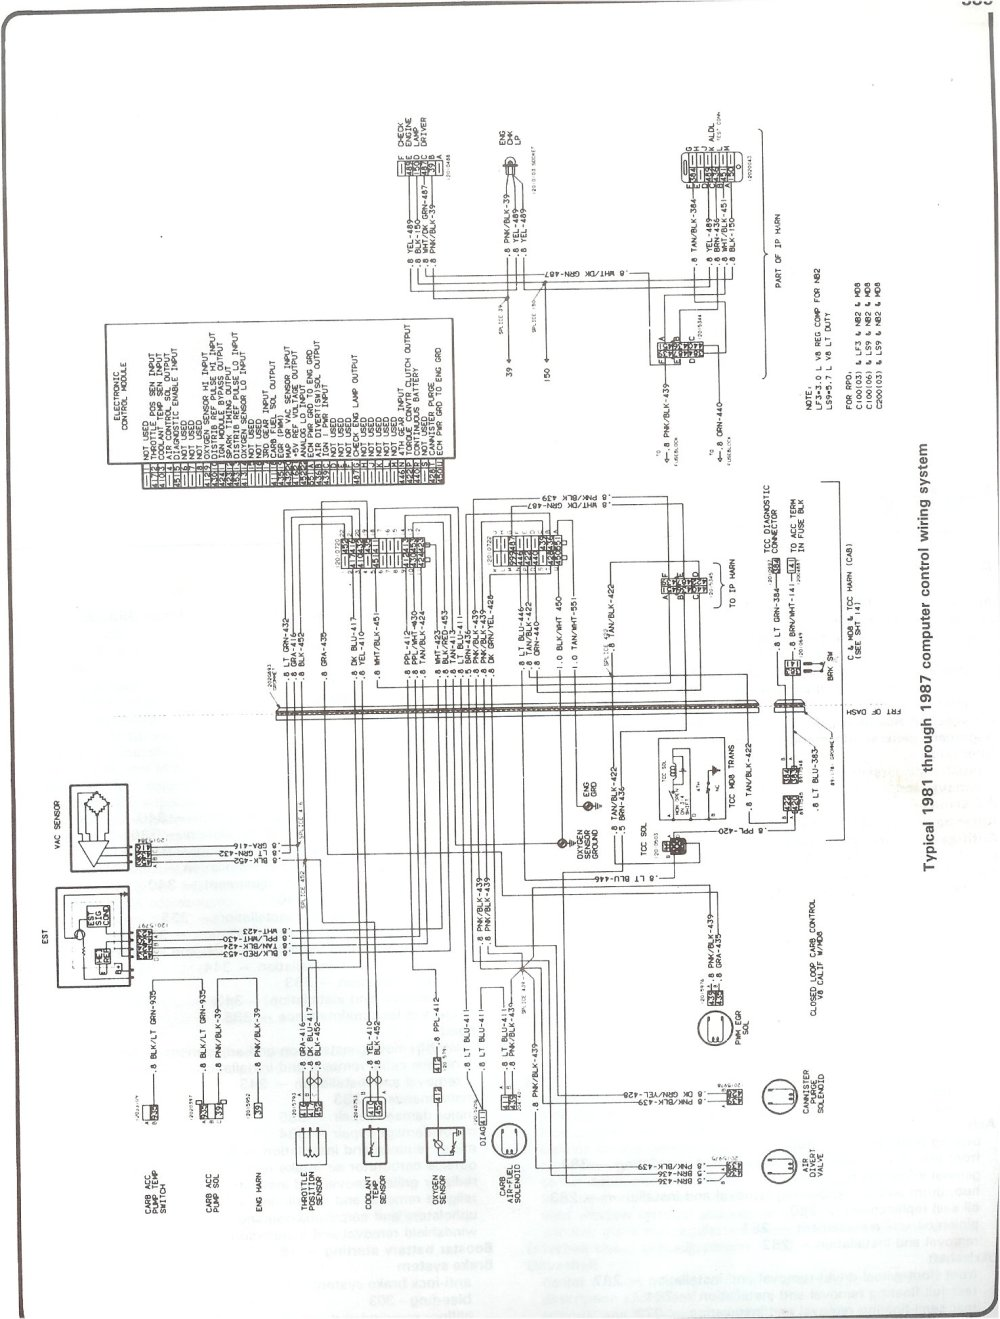 medium resolution of complete 73 87 wiring diagrams rh forum 73 87chevytrucks com 2001 chevy silverado 1500 wiring diagram